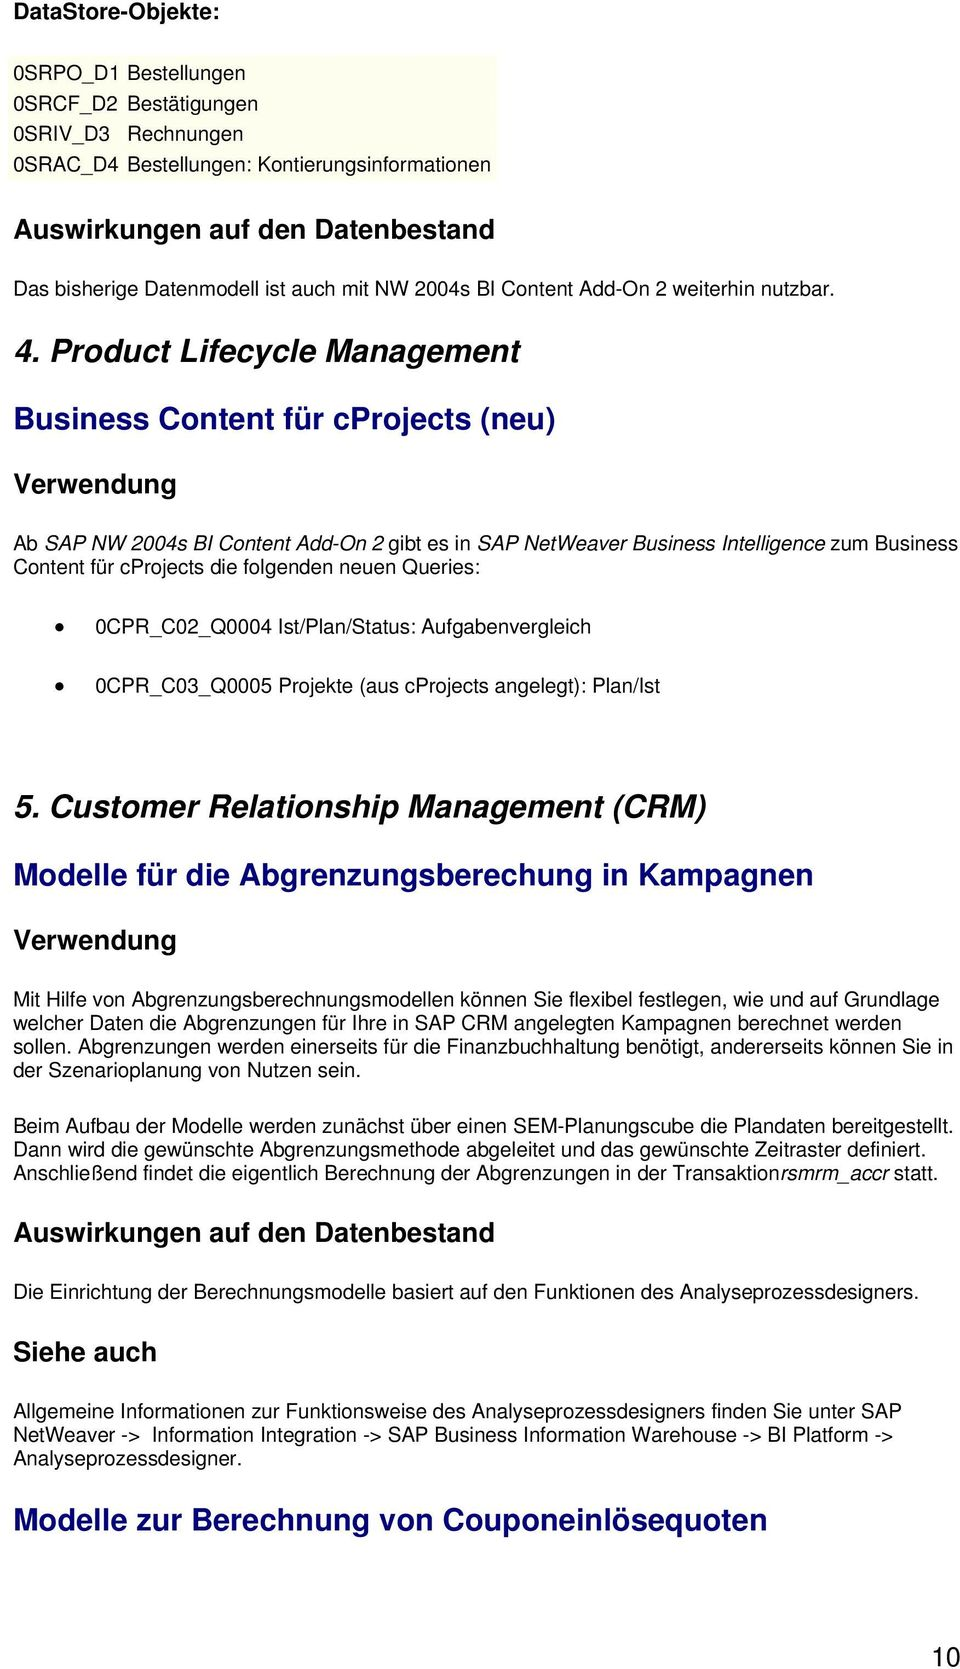 Prduct Lifecycle Management Business Cntent für cprjects (neu) Ab SAP NW 2004s BI Cntent Add-On 2 gibt es in SAP NetWeaver Business Intelligence zum Business Cntent für cprjects die flgenden neuen